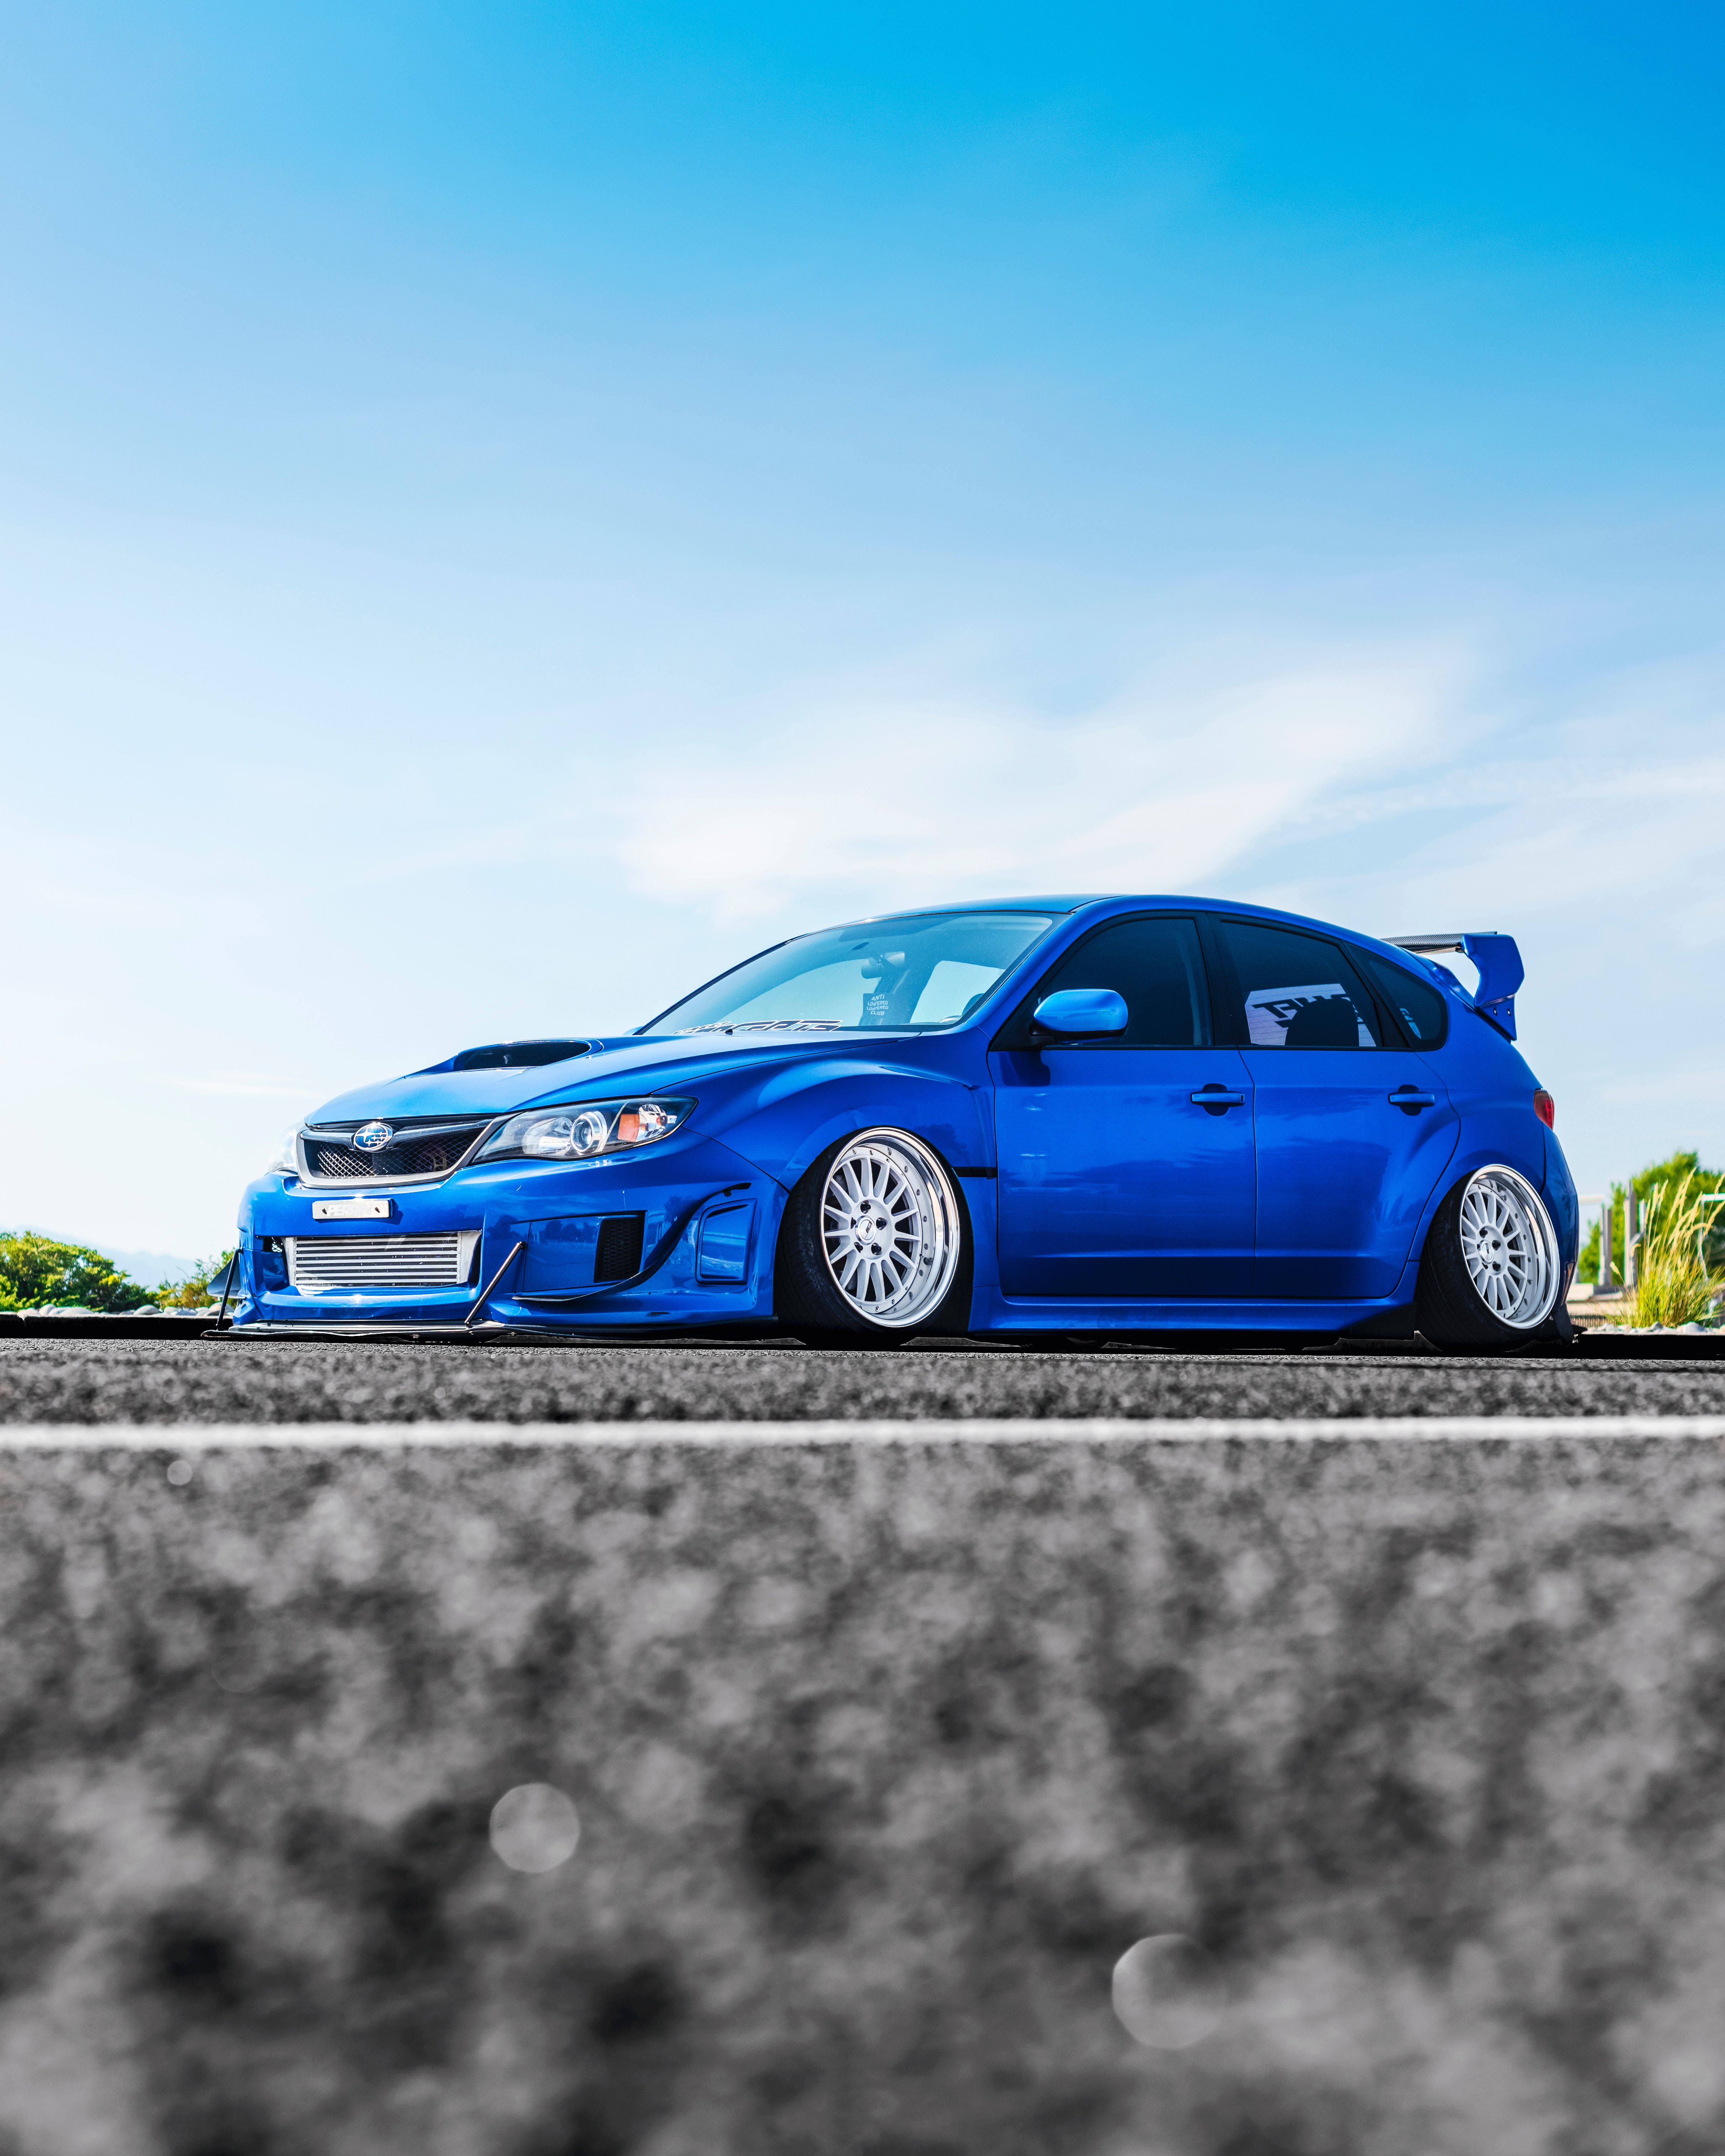 93592 download wallpaper Subaru, Cars, Car, Side View screensavers and pictures for free